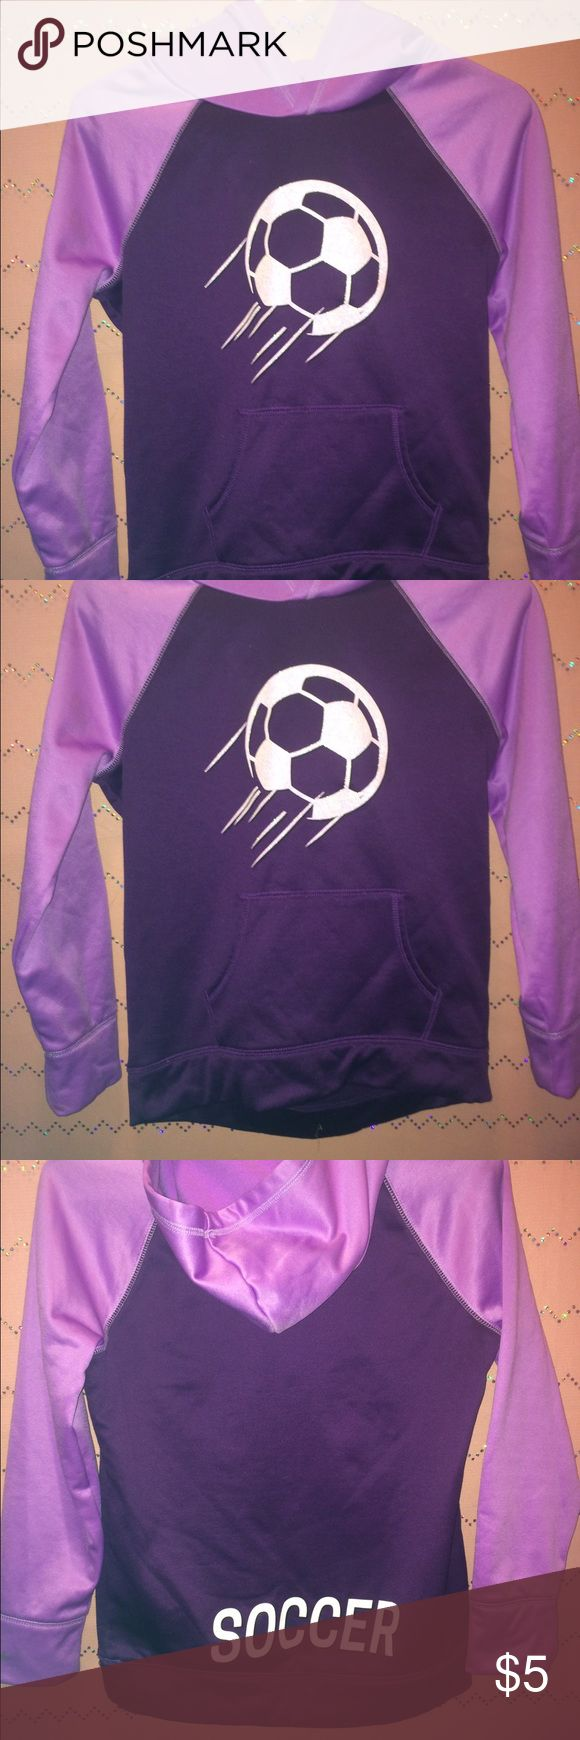 Girls Justice Soccer Hoodie Size 12 Must see pictures. In good condition but somehow managed to get a little paint or nail polish on one sleeves. Justice Shirts & Tops Sweatshirts & Hoodies